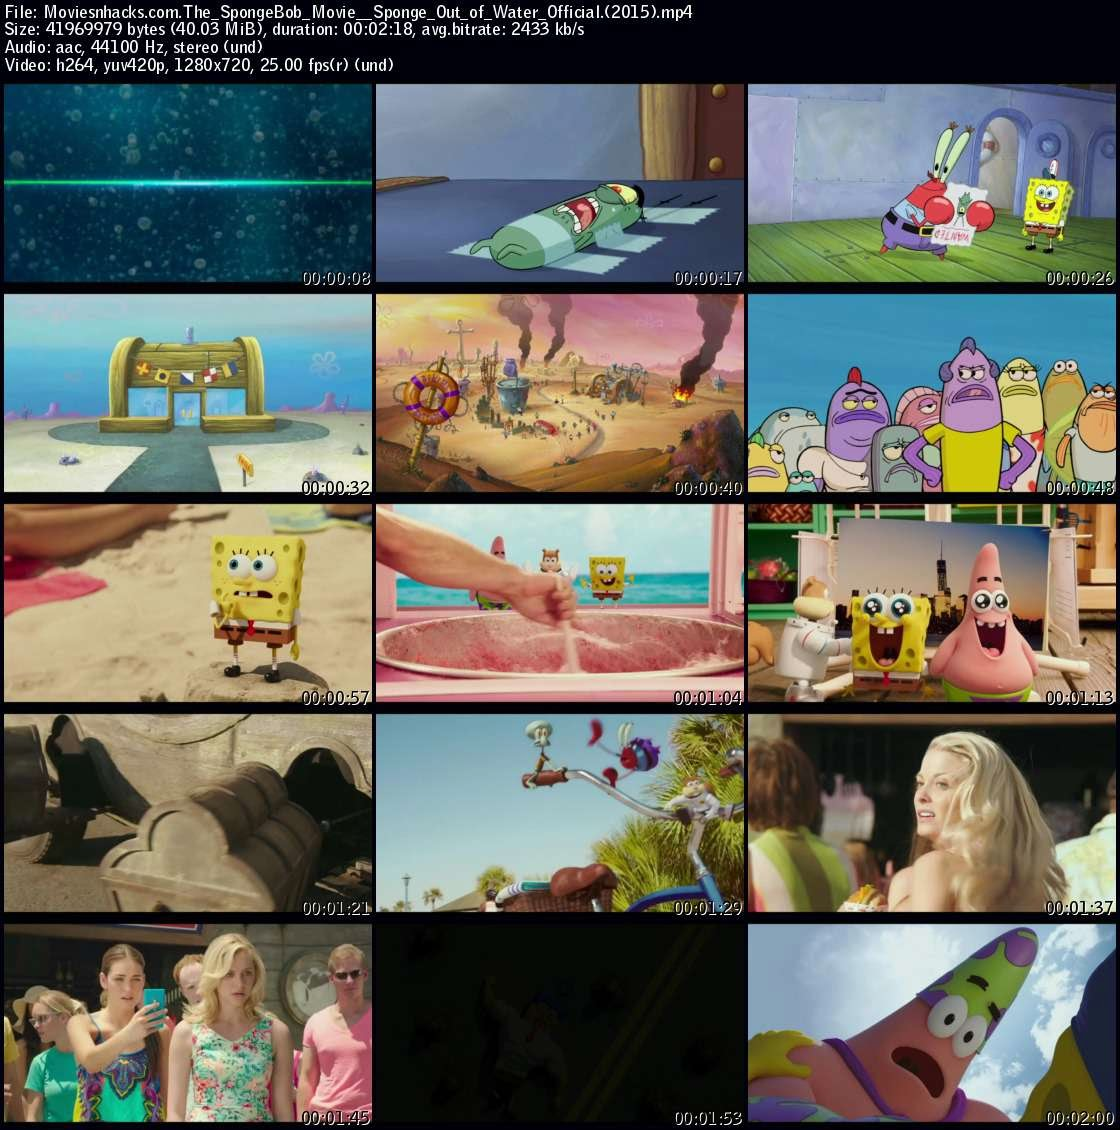 The SpongeBob Movie: Sponge Out of Water Official International Trailer (2015) - Movie HD